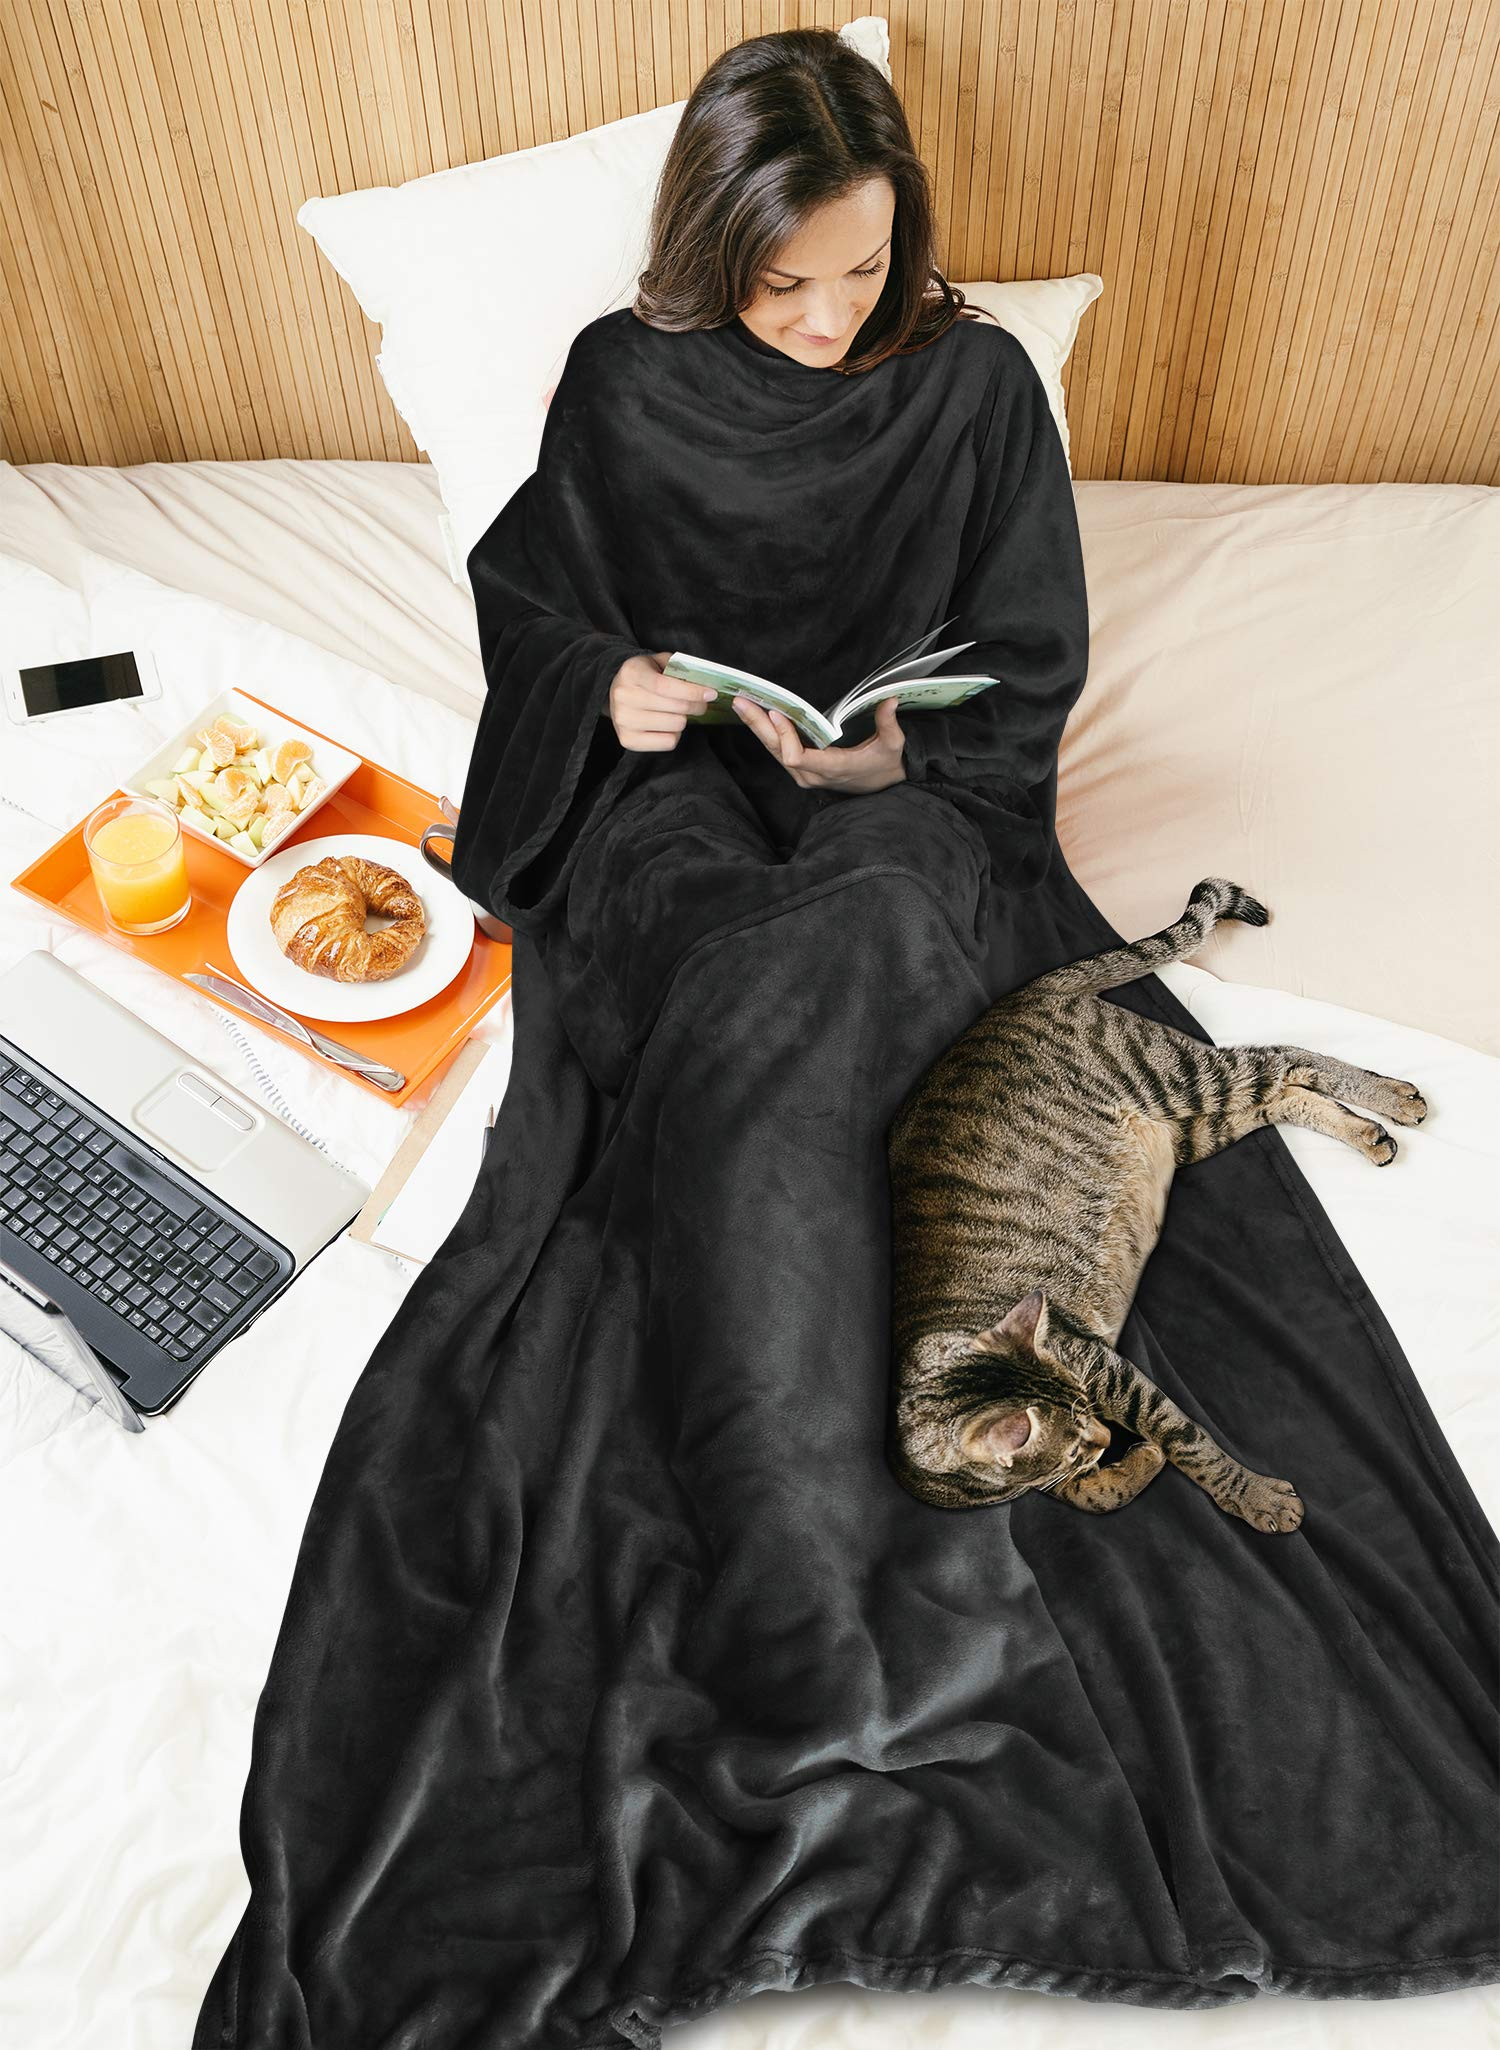 Fleece Wearable Blanket with Sleeves for Women Men, Super Soft Warm Cozy Micro Plush Functional Lightweight TV Wrap Robe Throw Blanket with Pocket for Lounge Couch Home Office, Black